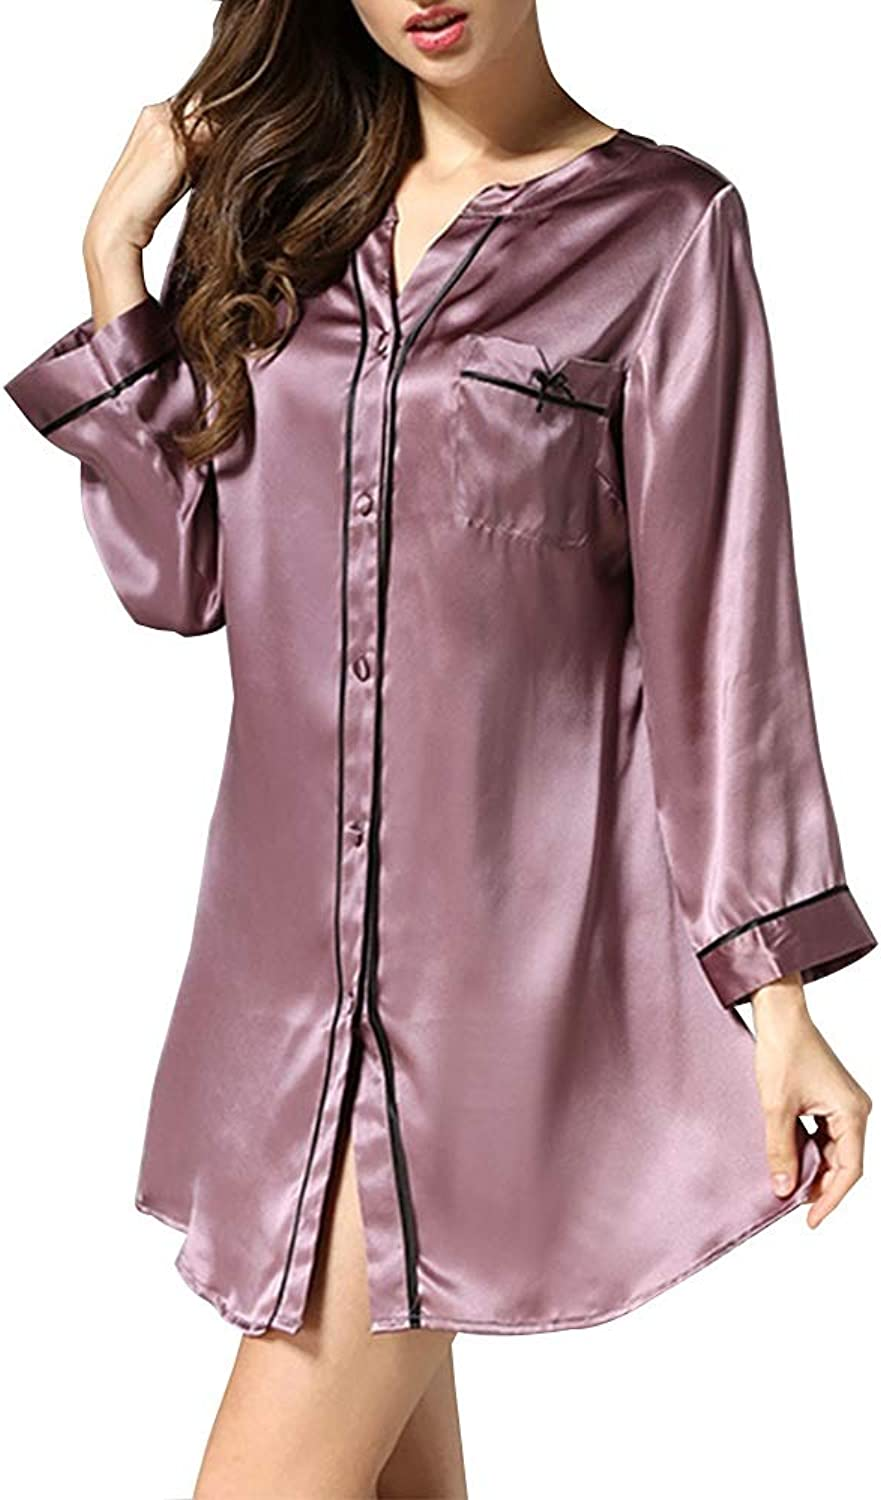 Pajamas Summer Ladies Sexy ShirtStyle Nightdress 100% Silk Fabric Casual Home Clothing (color   Purple, Size   XL)